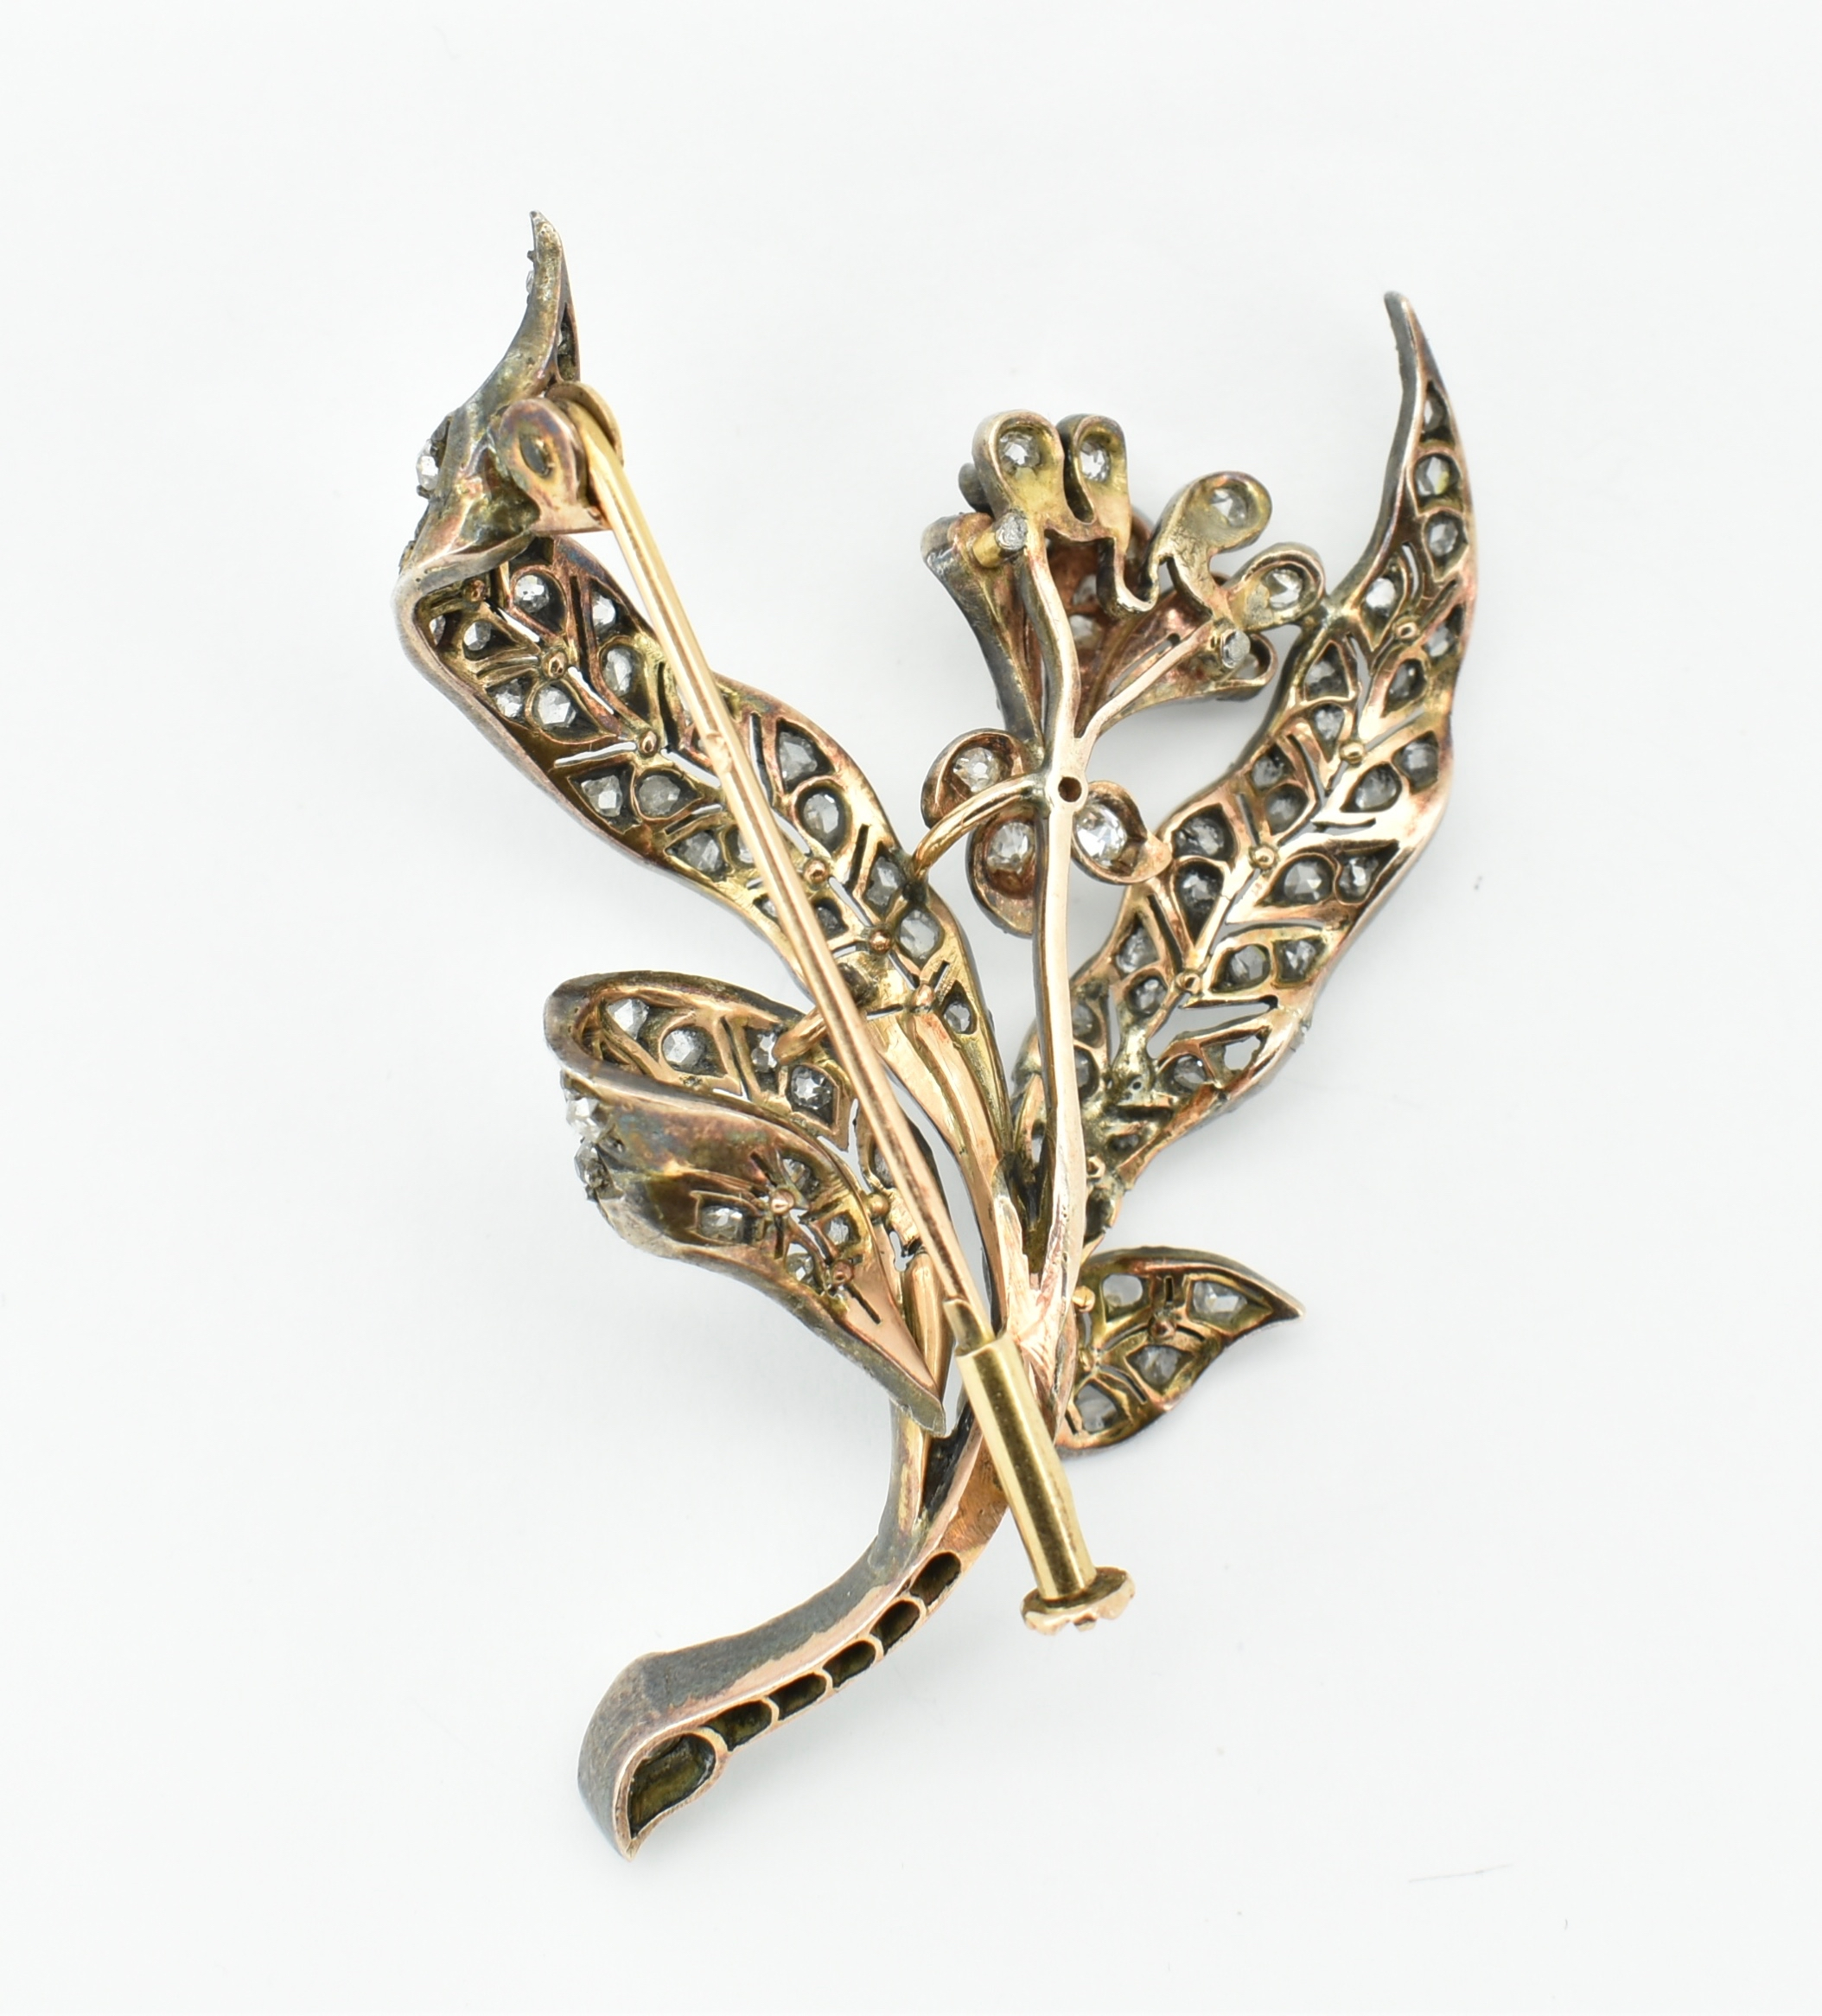 ANTIQUE 18CT GOLD SILVER & DIAMOND FLORAL BROOCH PIN - Image 2 of 2